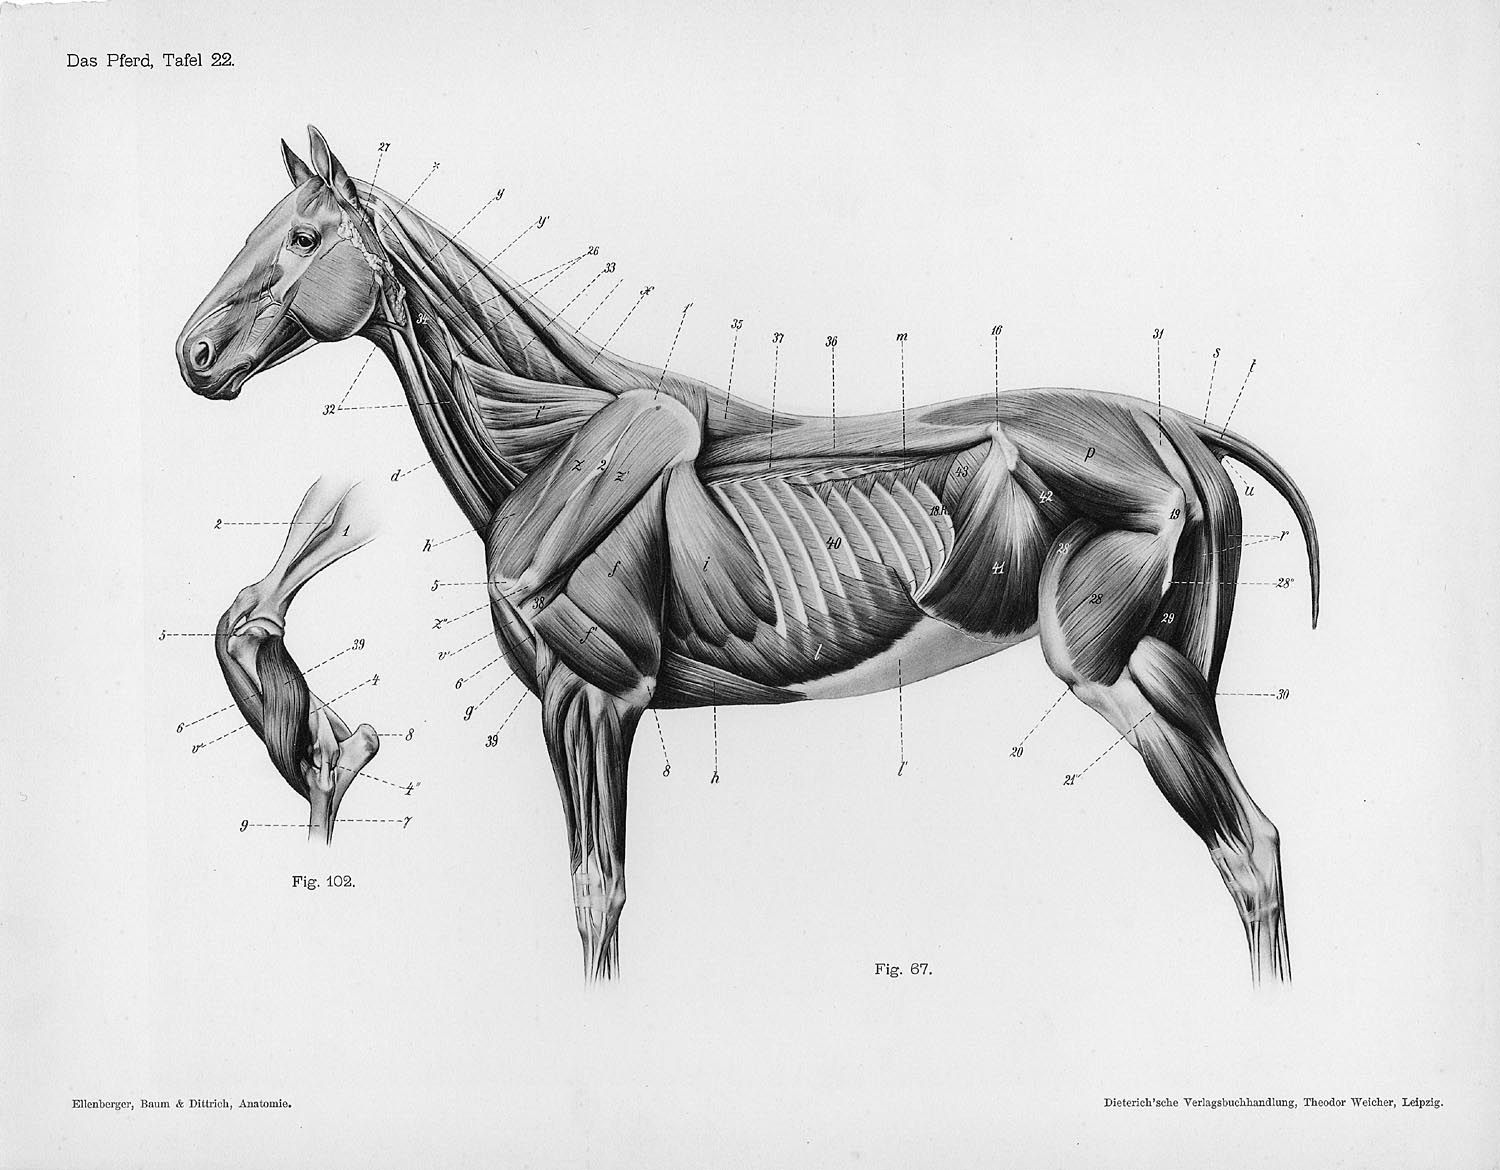 Horse Anatomy By Herman Dittrich Full Body Musculature Muscle Diagram Reference Animal